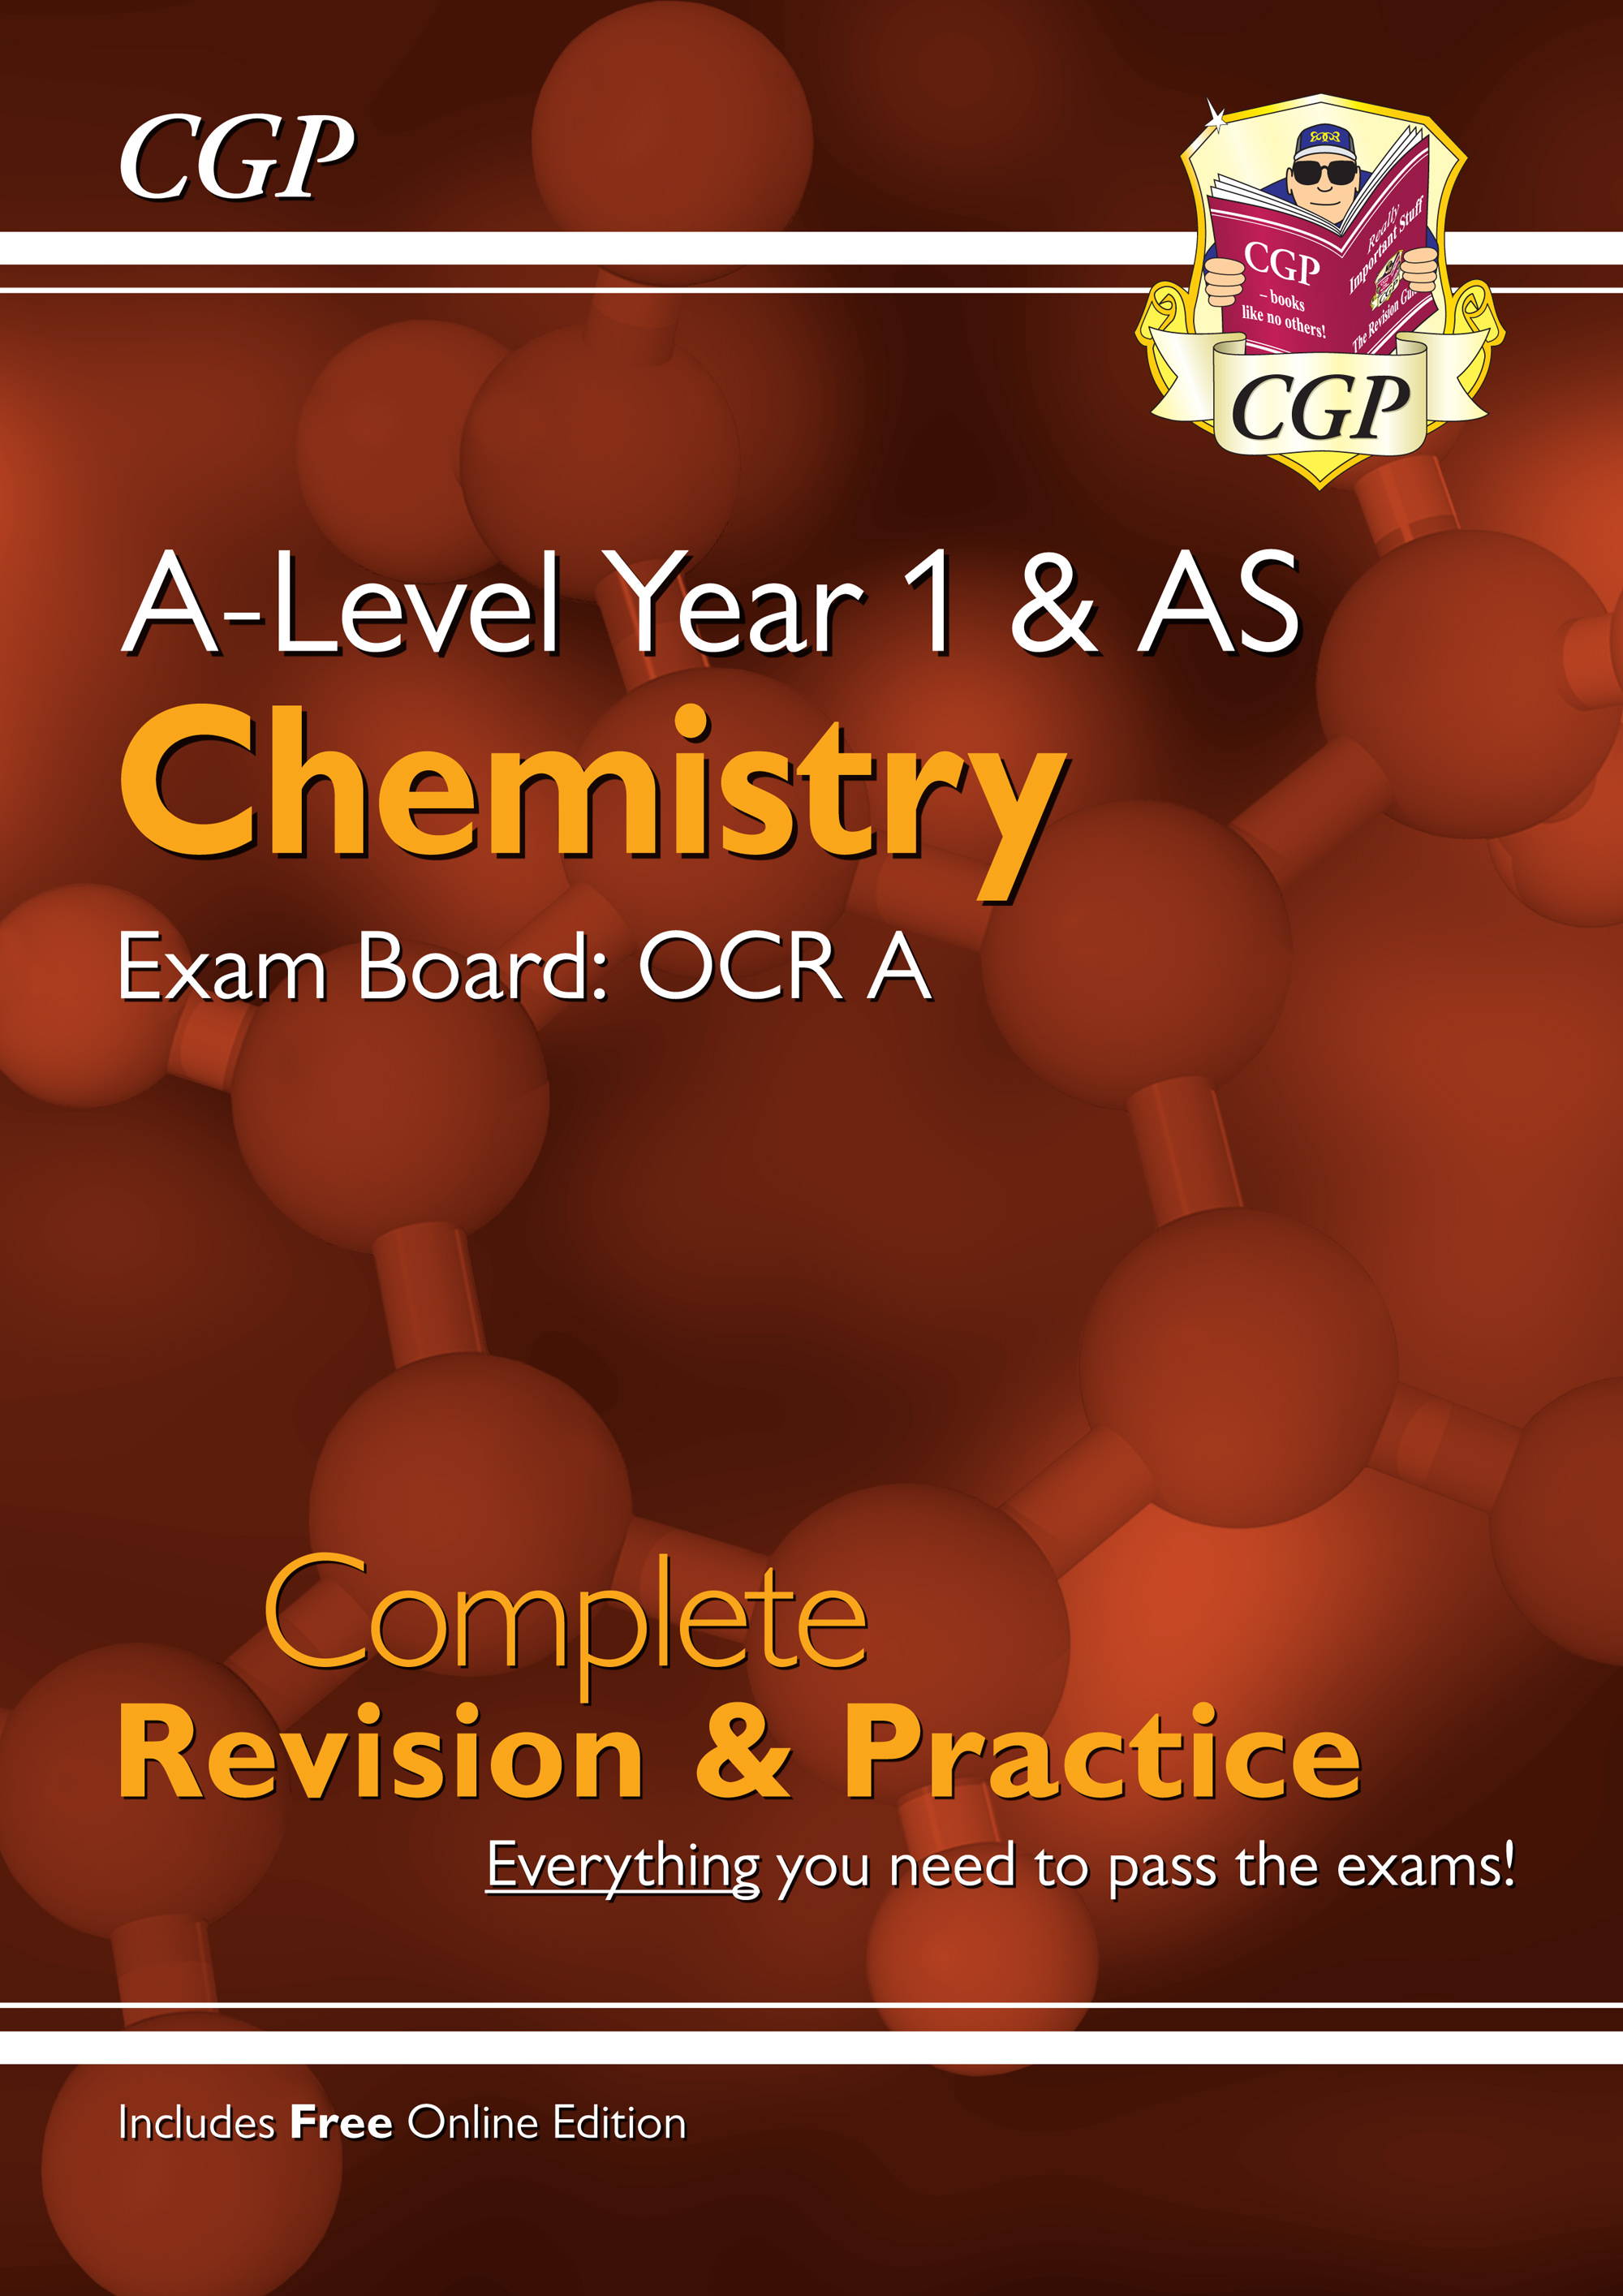 CRAR54 - New A-Level Chemistry for 2018: OCR A Year 1 & AS Complete Revision & Practice with Online